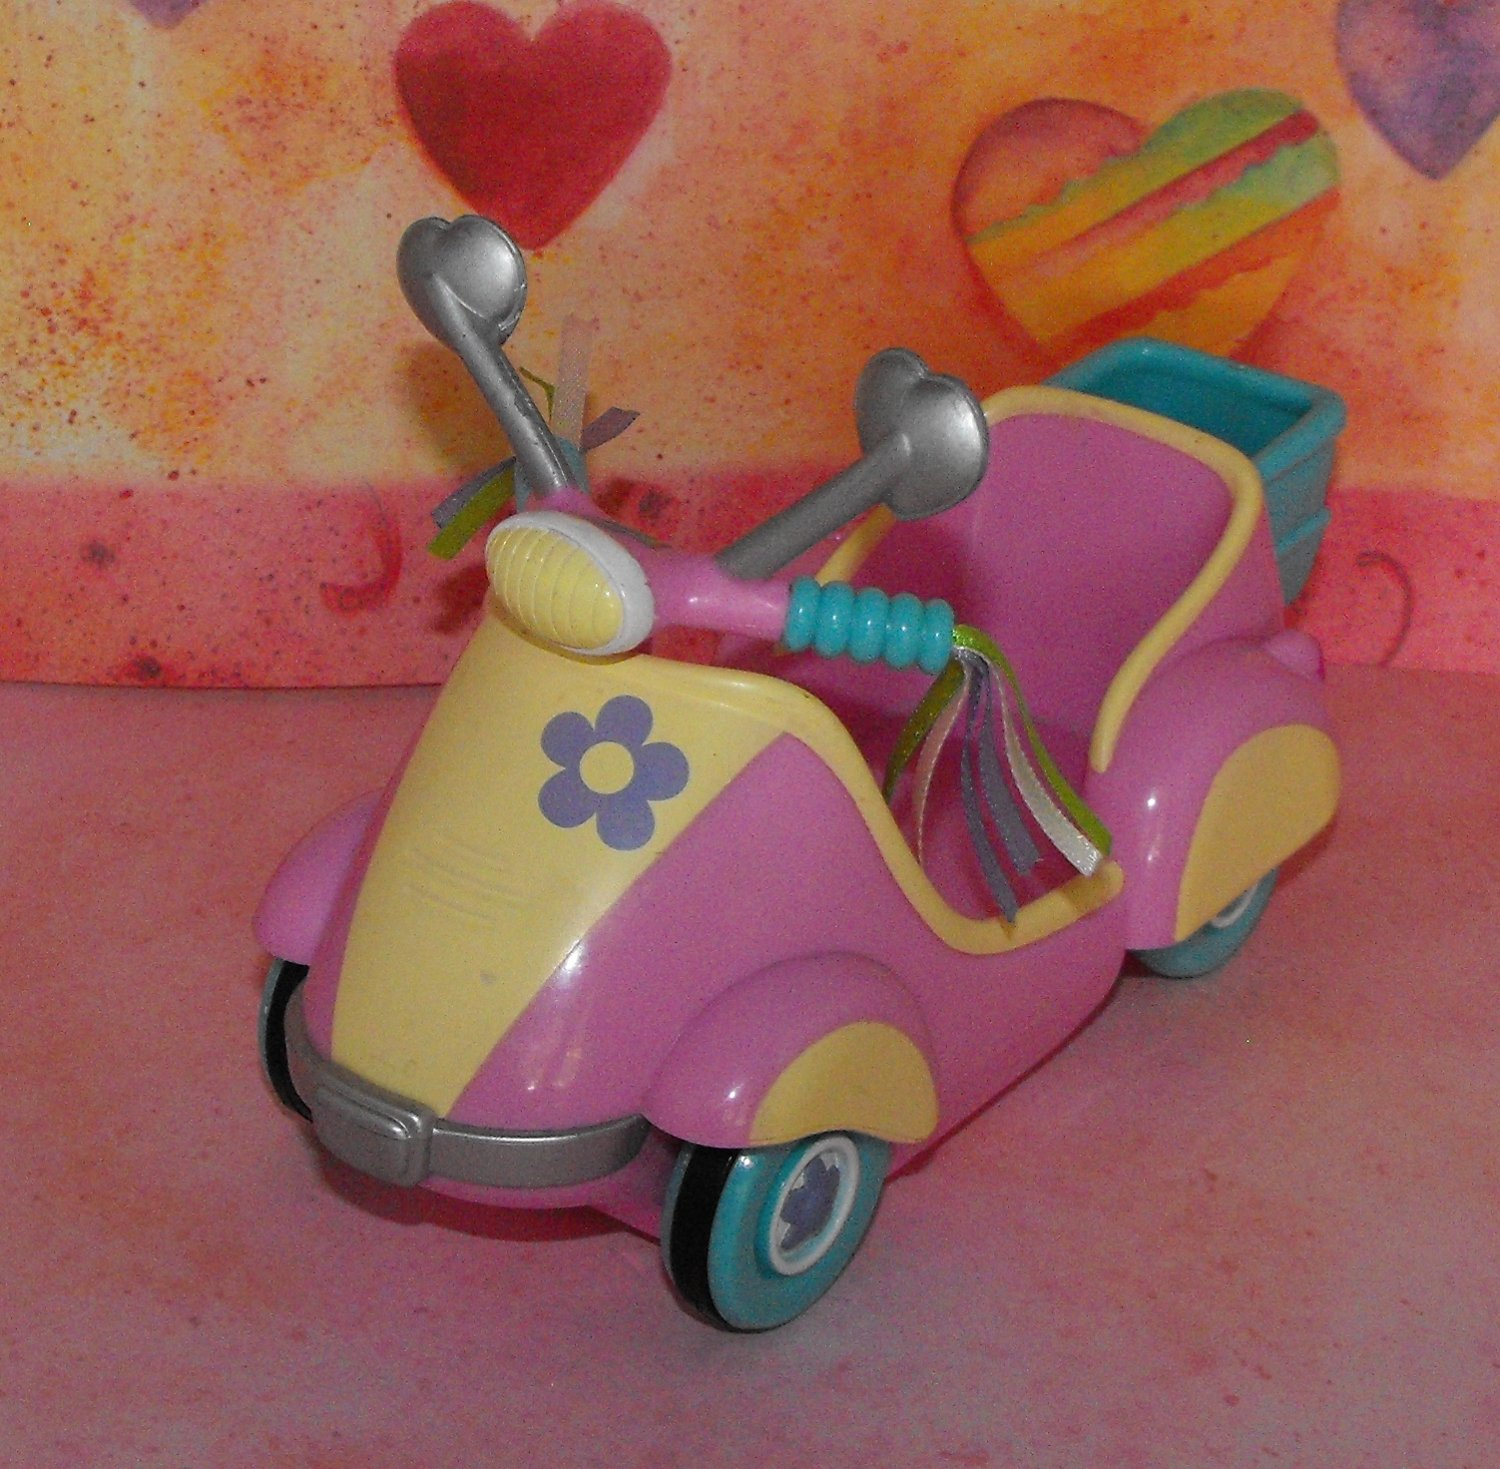 My Little Pony 2004 Breezie's Scootin' Along Scooter G3